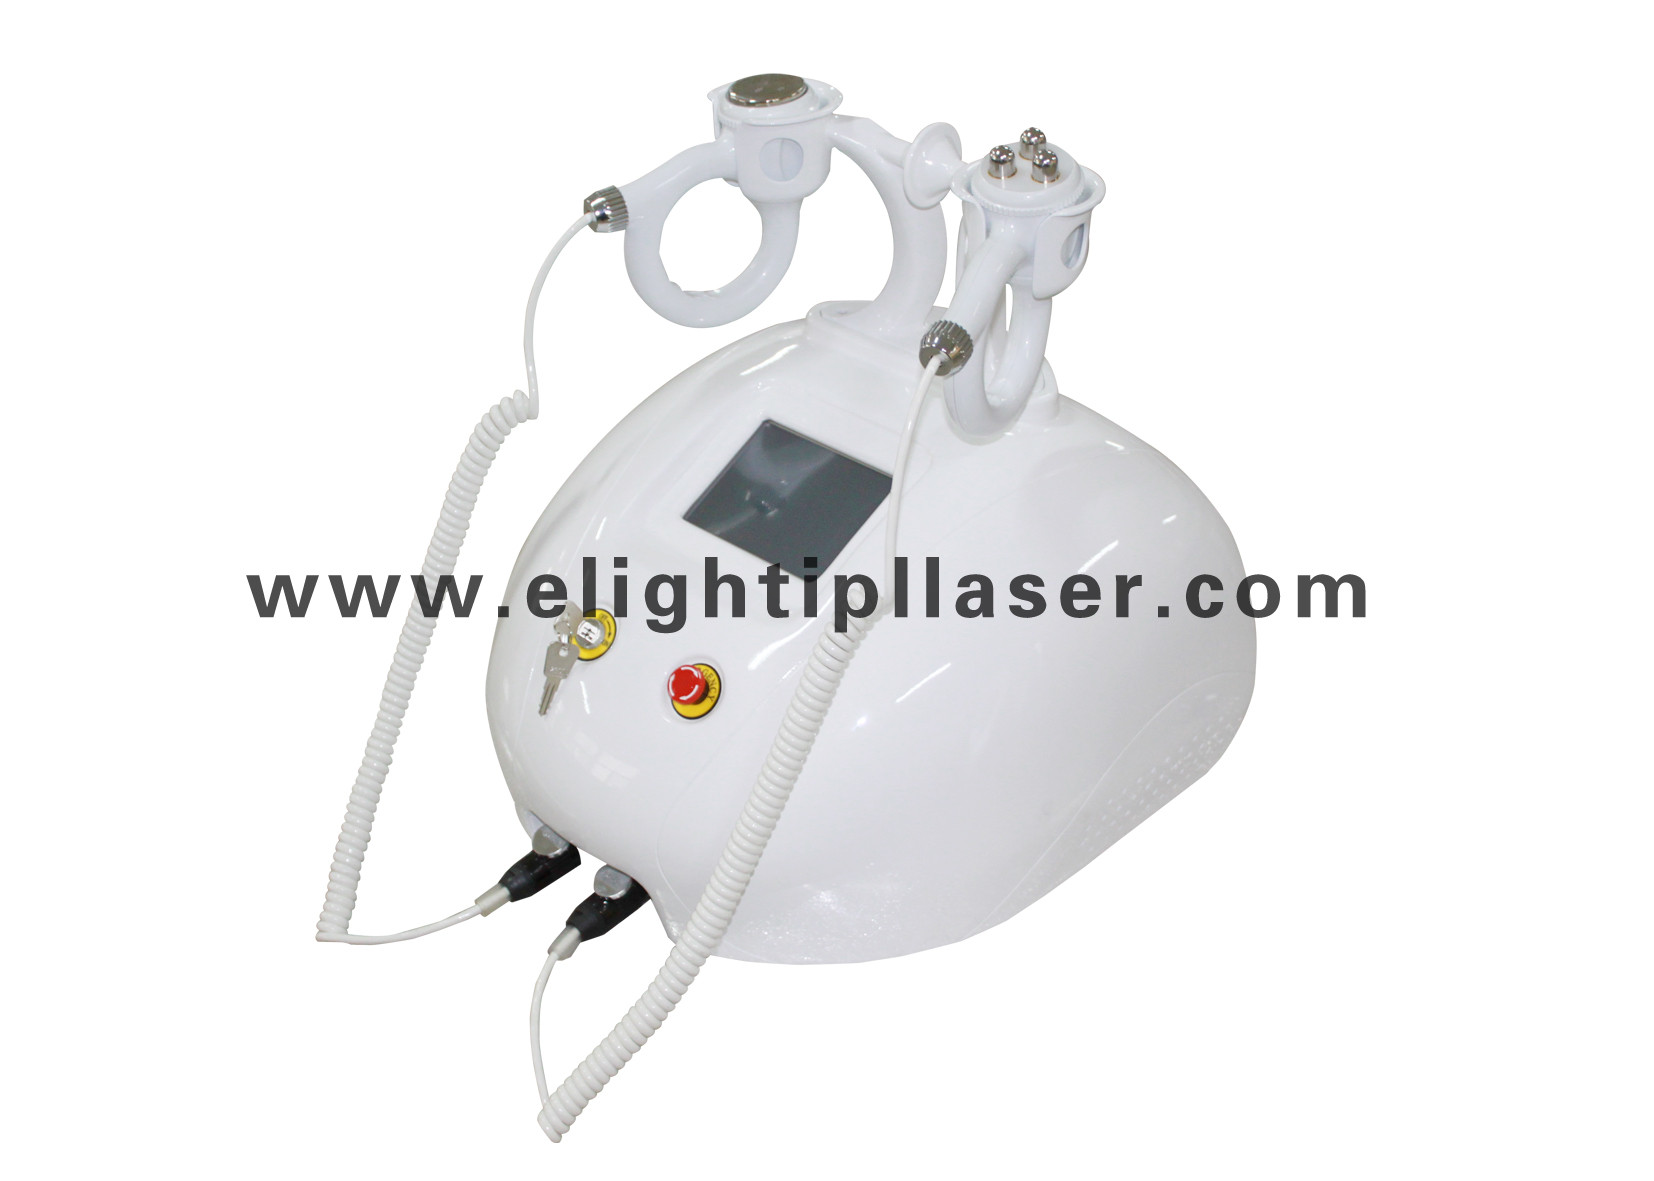 Professional Ultrasonic Slimming Machine For Skin Tightening No Pain